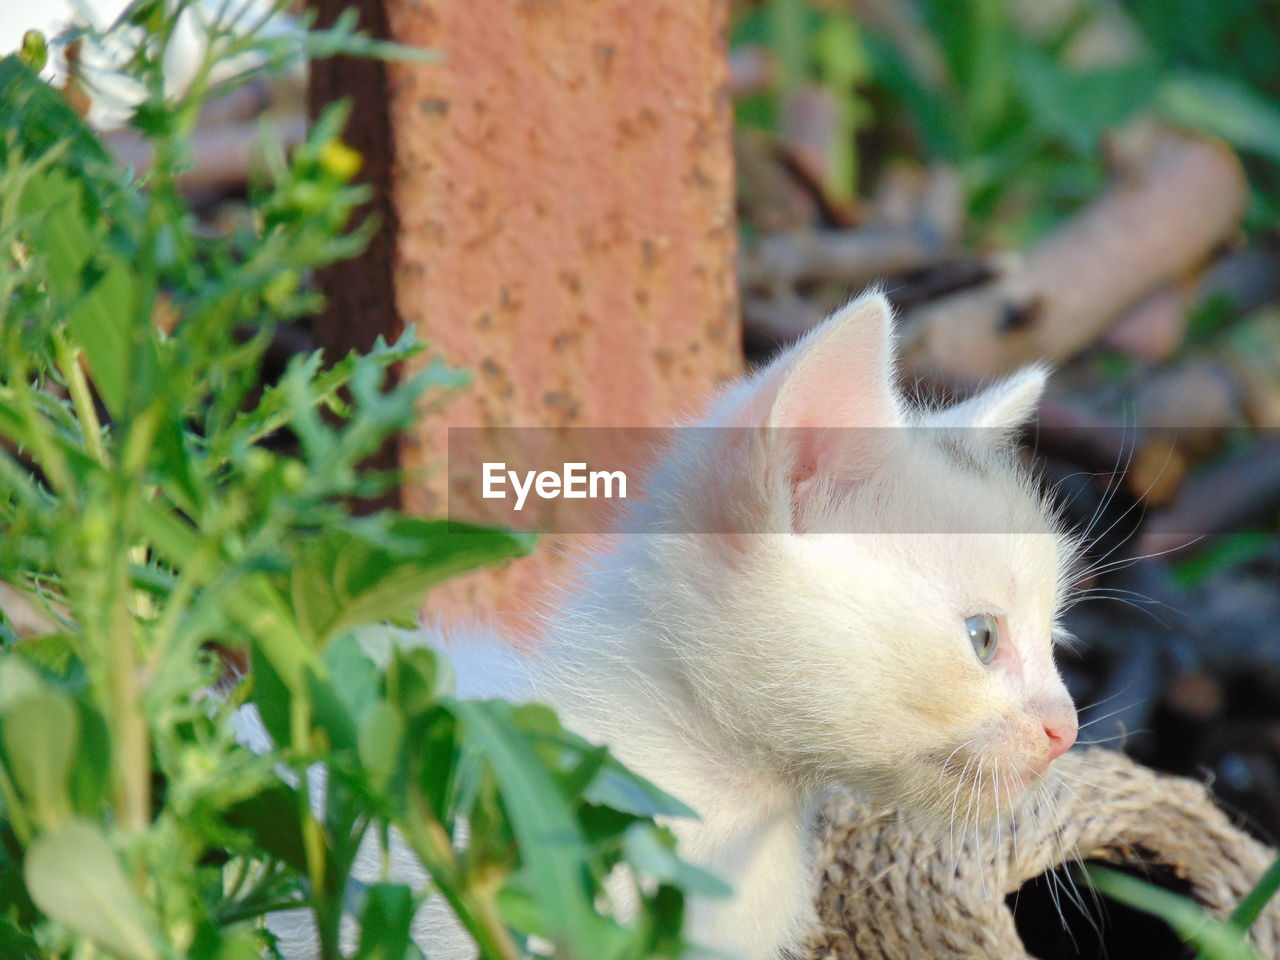 mammal, animal themes, one animal, animal, vertebrate, pets, domestic, domestic animals, feline, cat, plant part, close-up, domestic cat, leaf, plant, no people, nature, day, focus on foreground, outdoors, whisker, animal head